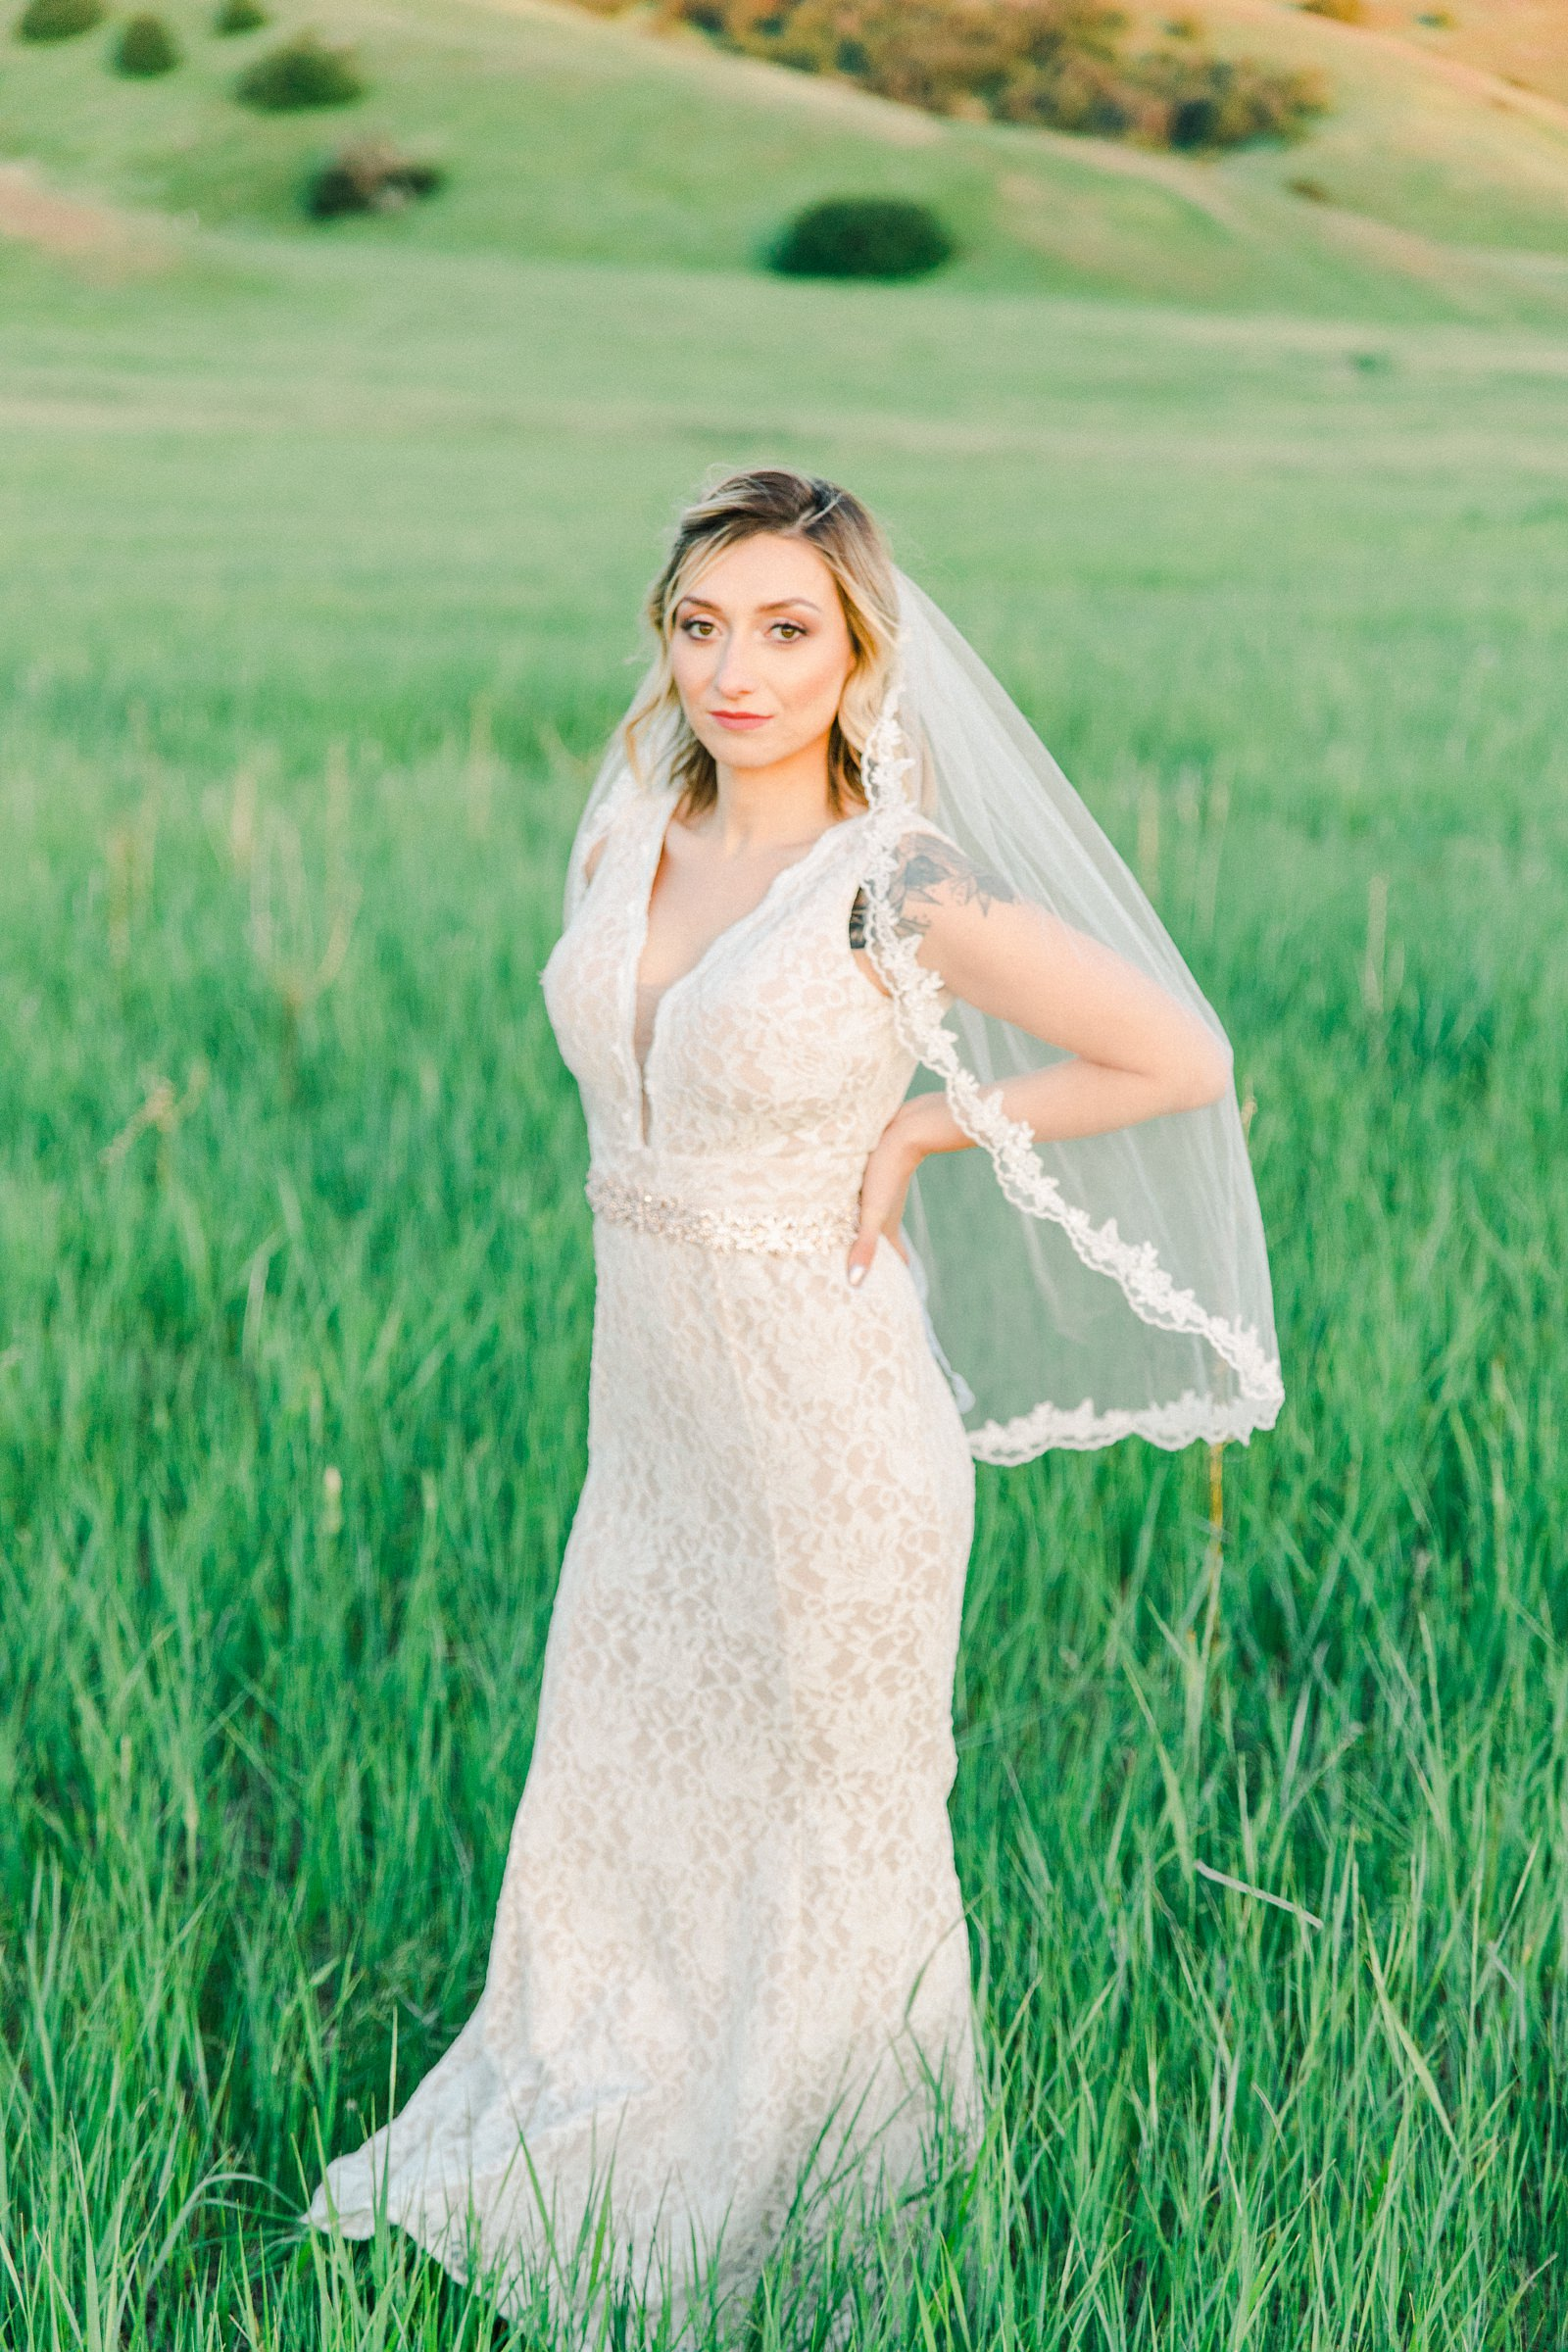 Salt Lake City Utah Bridal Wedding Photography, Tunnel Springs Park, bride wedding dress vintage lace dress with fingertip veil, open green field